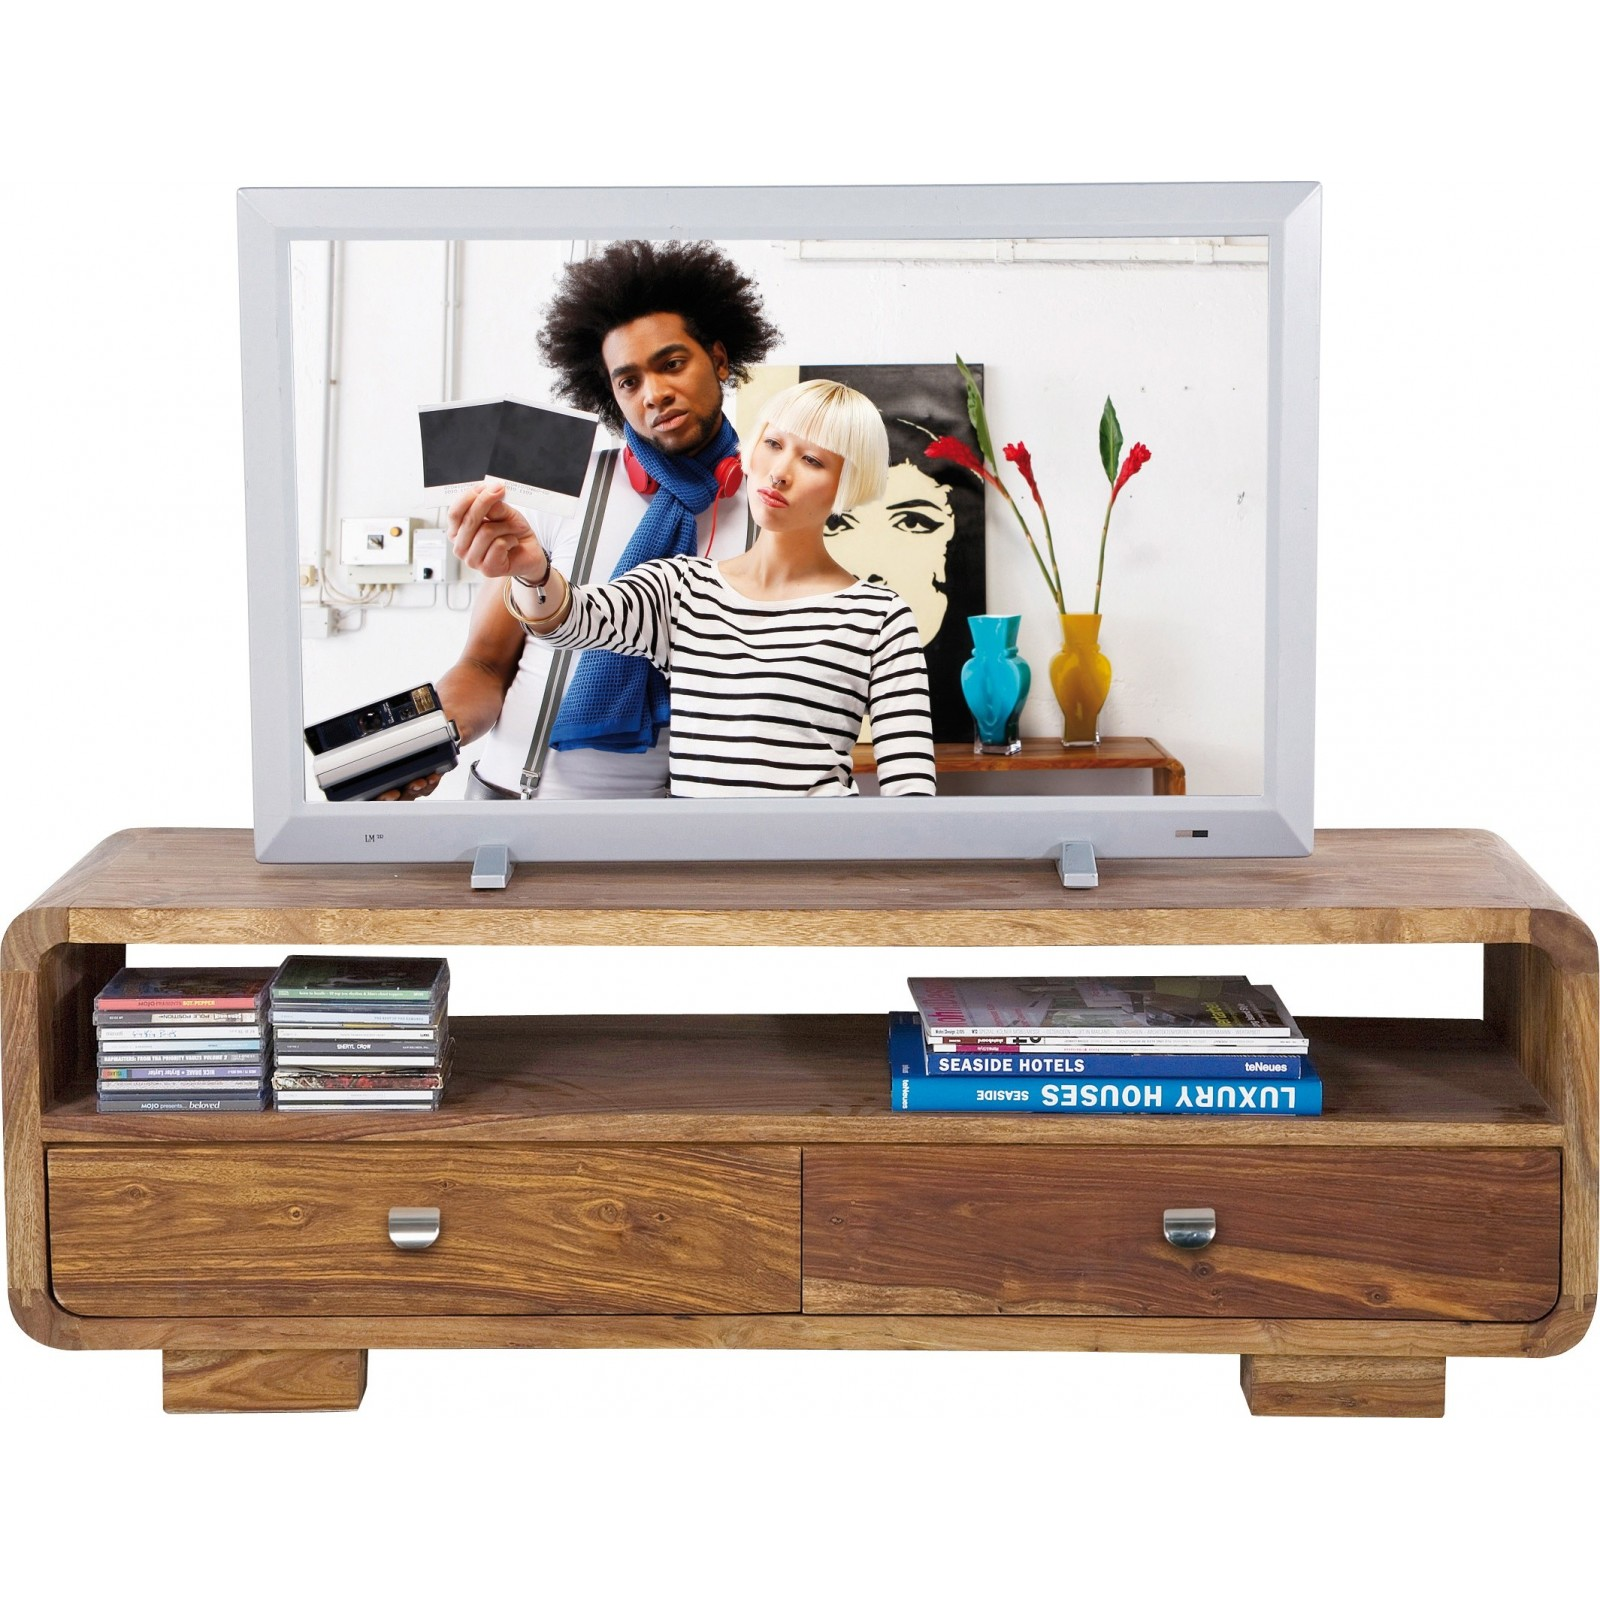 Meuble tv en bois authentico club kare design - Meuble kare design ...